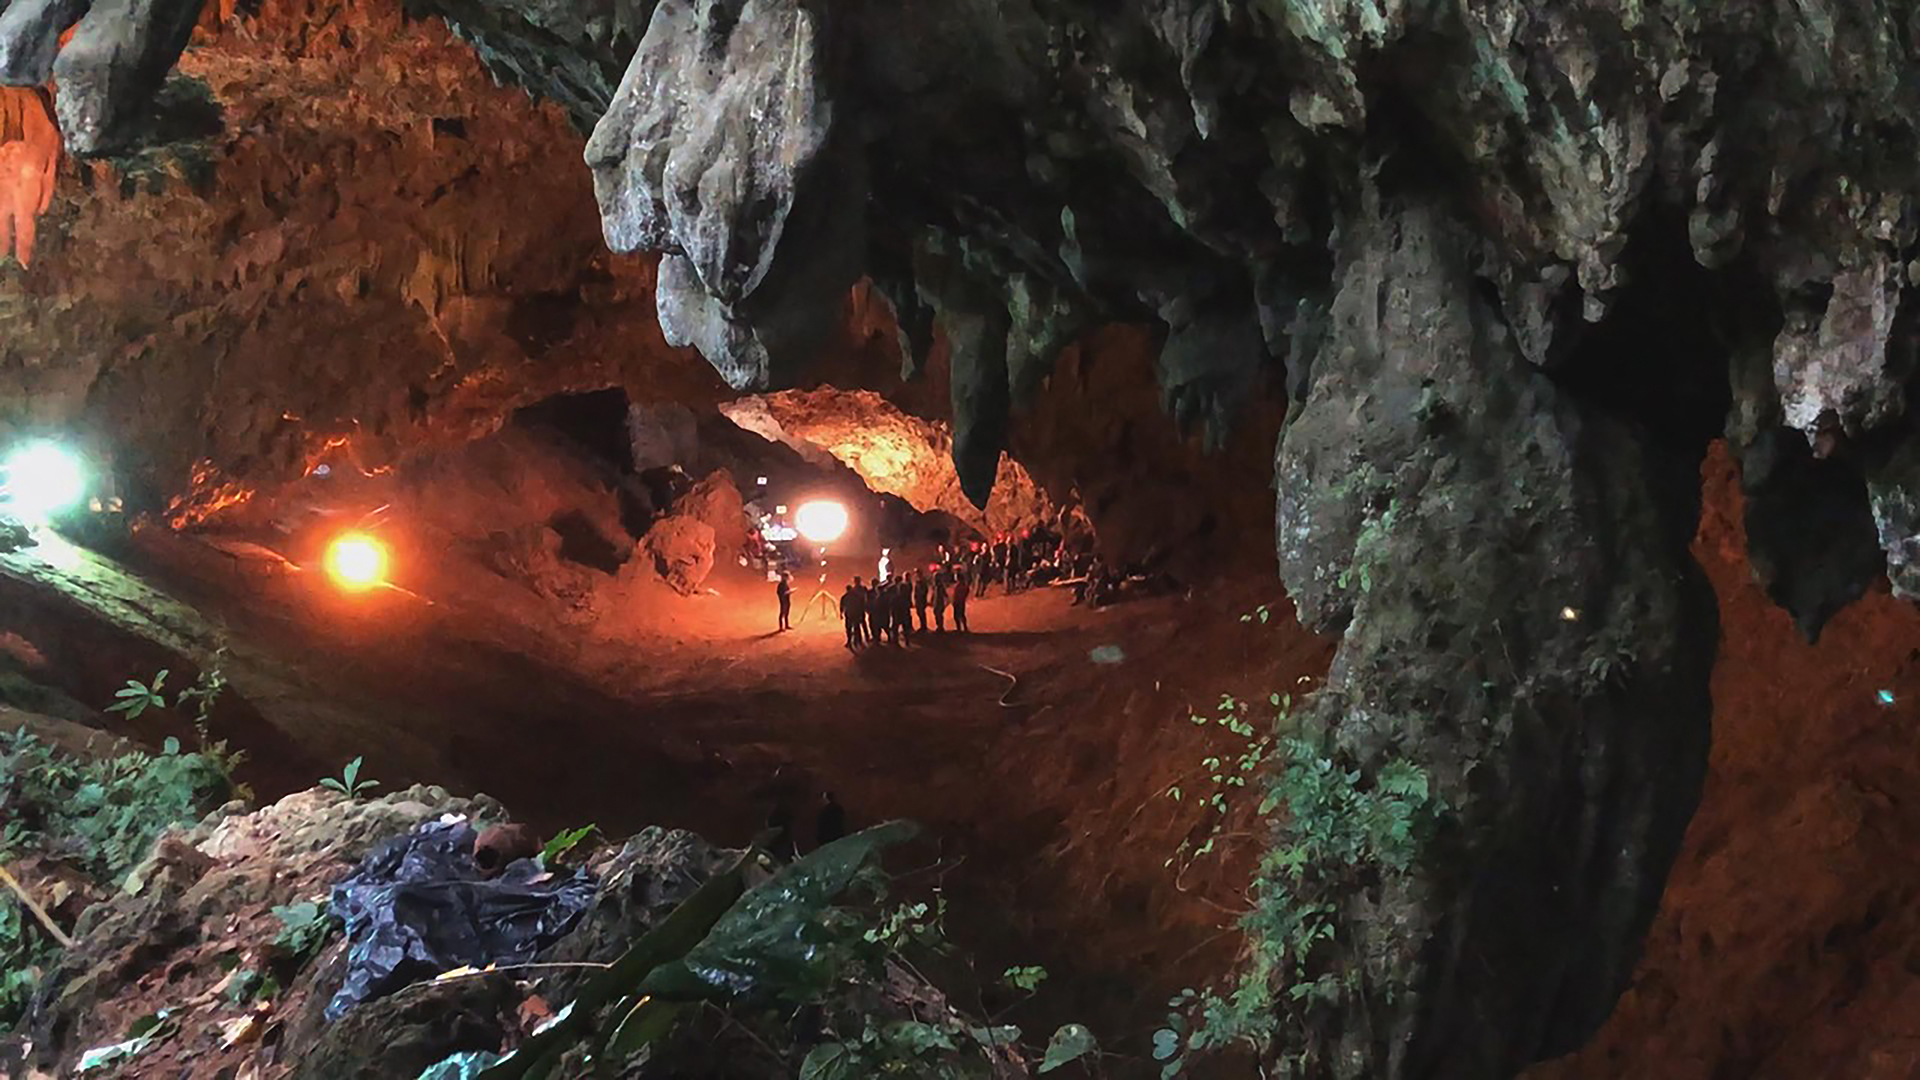 THE RESCUE chronicles the 2018 rescue of 12 Thai boys and their soccer coach, trapped deep inside a flooded cave. E. Chai Vasarhelyi and Jimmy Chin reveal the perilous world of cave diving, bravery of the rescuers, and dedication of a community that made great sacrifices to save these young boys. (Credit: National Geographic)